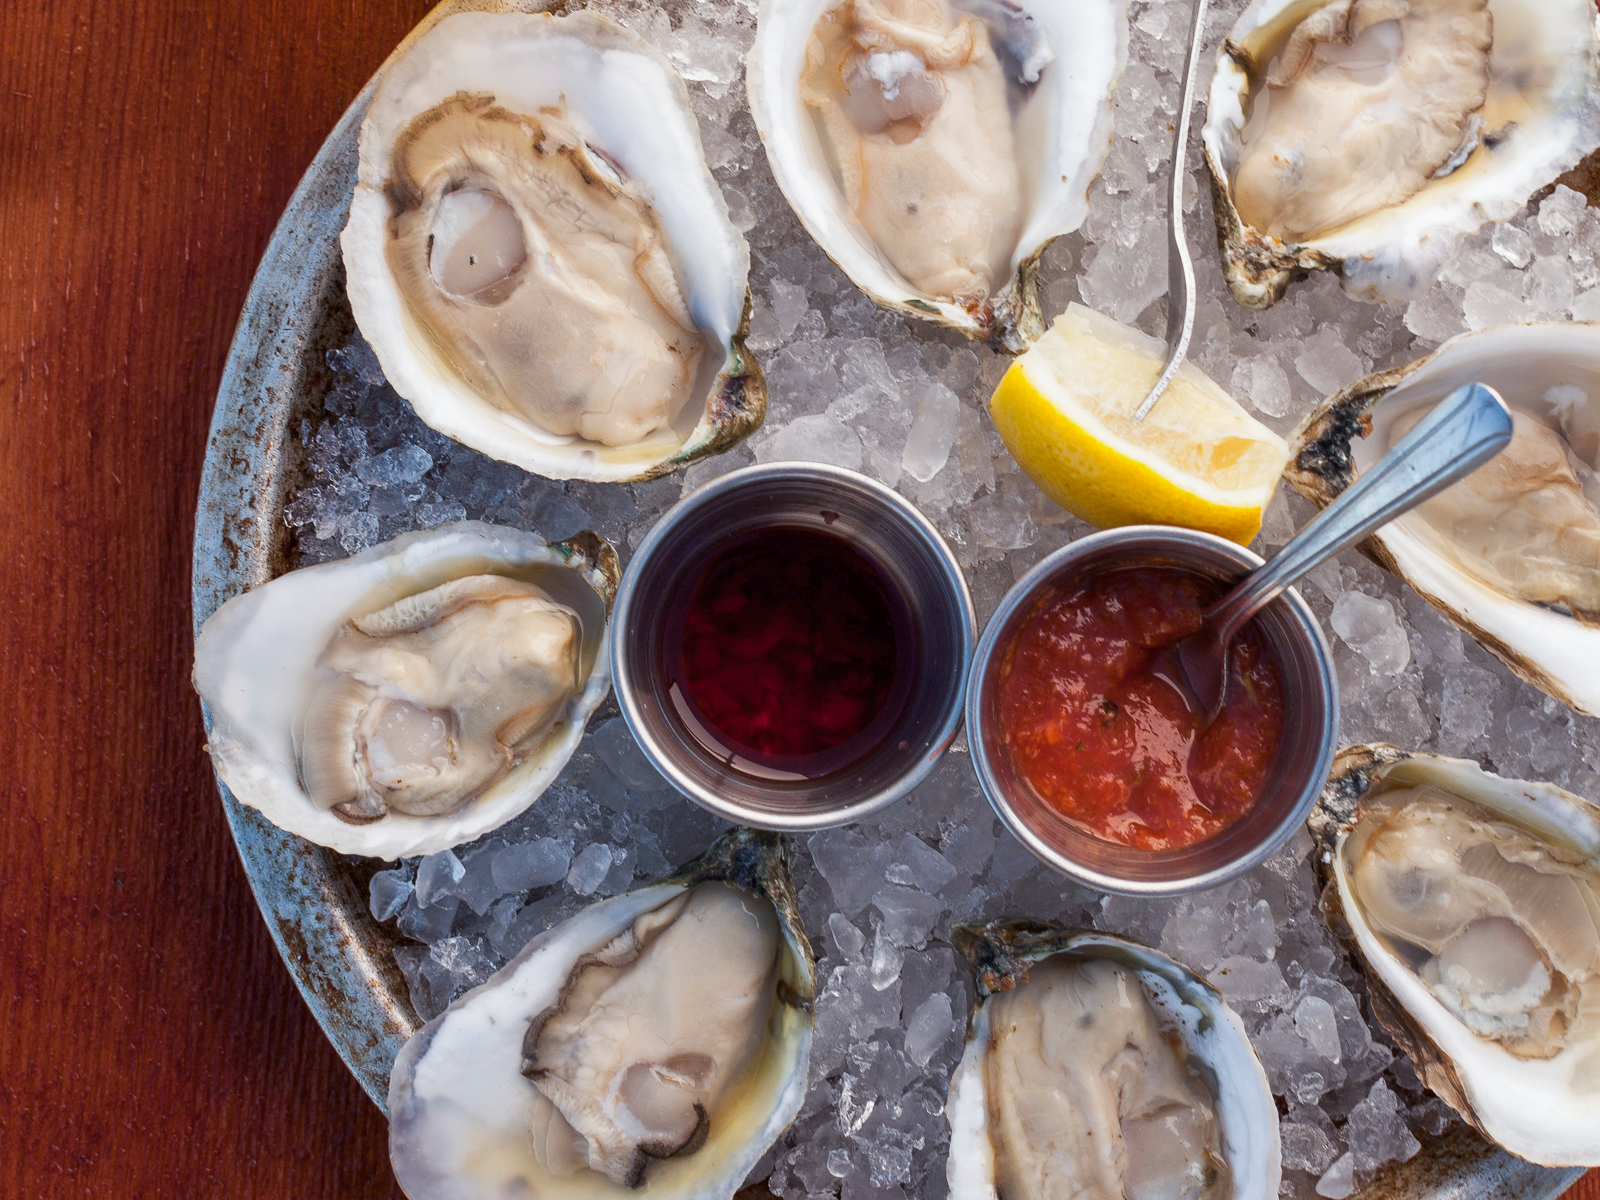 How to Talk About Oysters Like You Know What You're Talking About